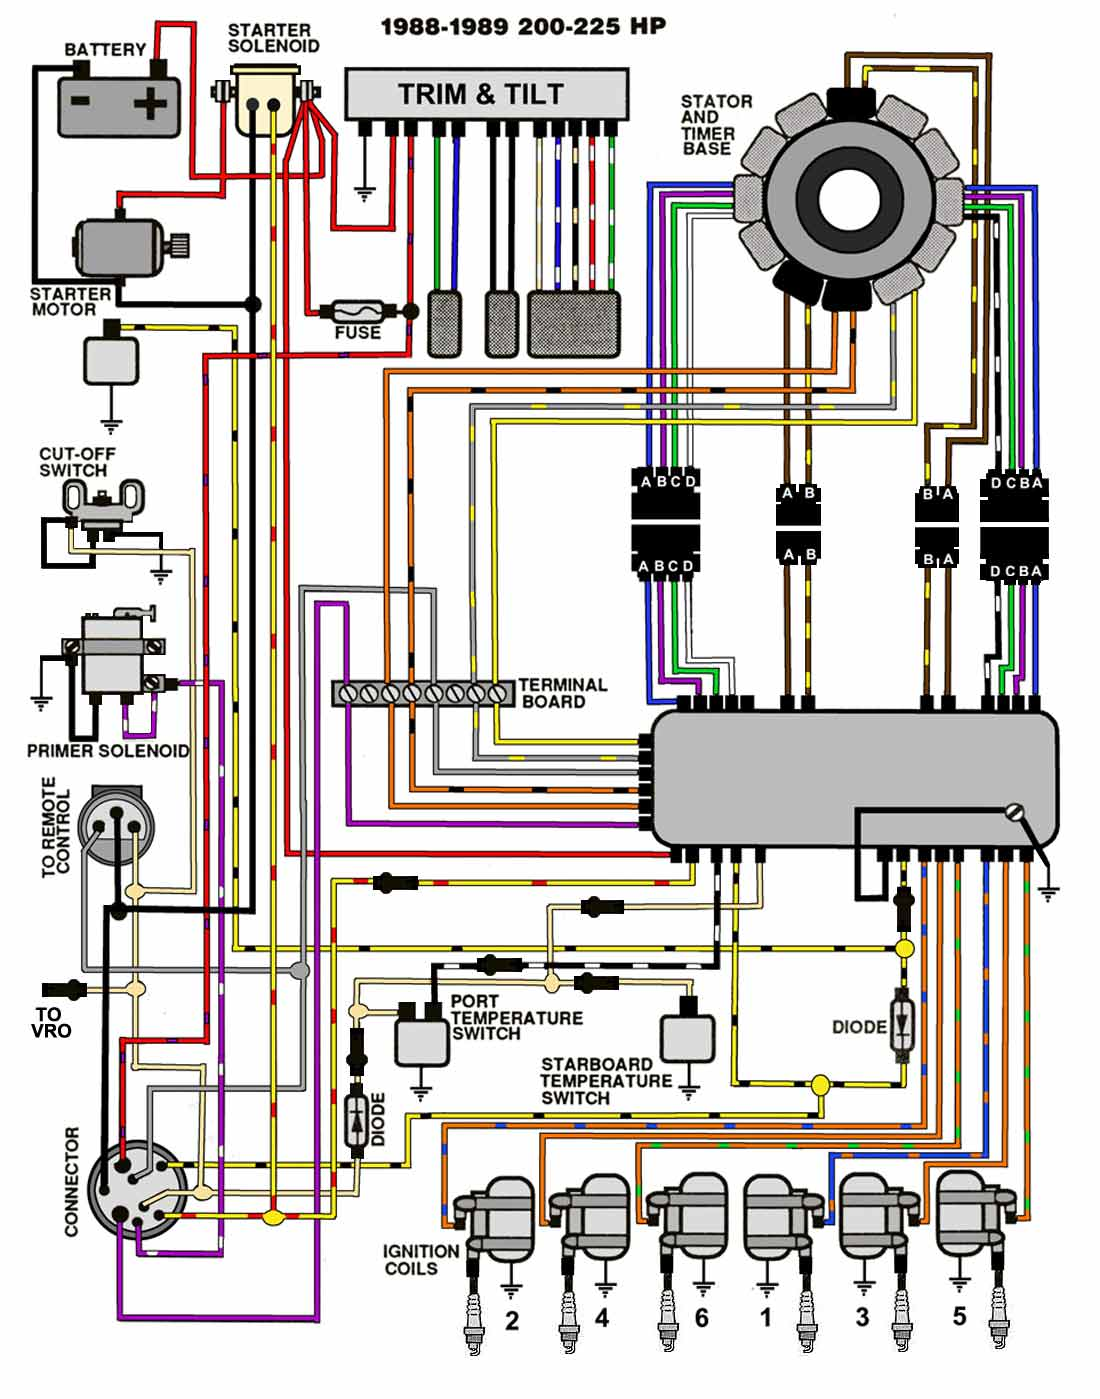 1988_89_200_225 mastertech marine evinrude johnson outboard wiring diagrams Basic Electrical Wiring Diagrams at mifinder.co